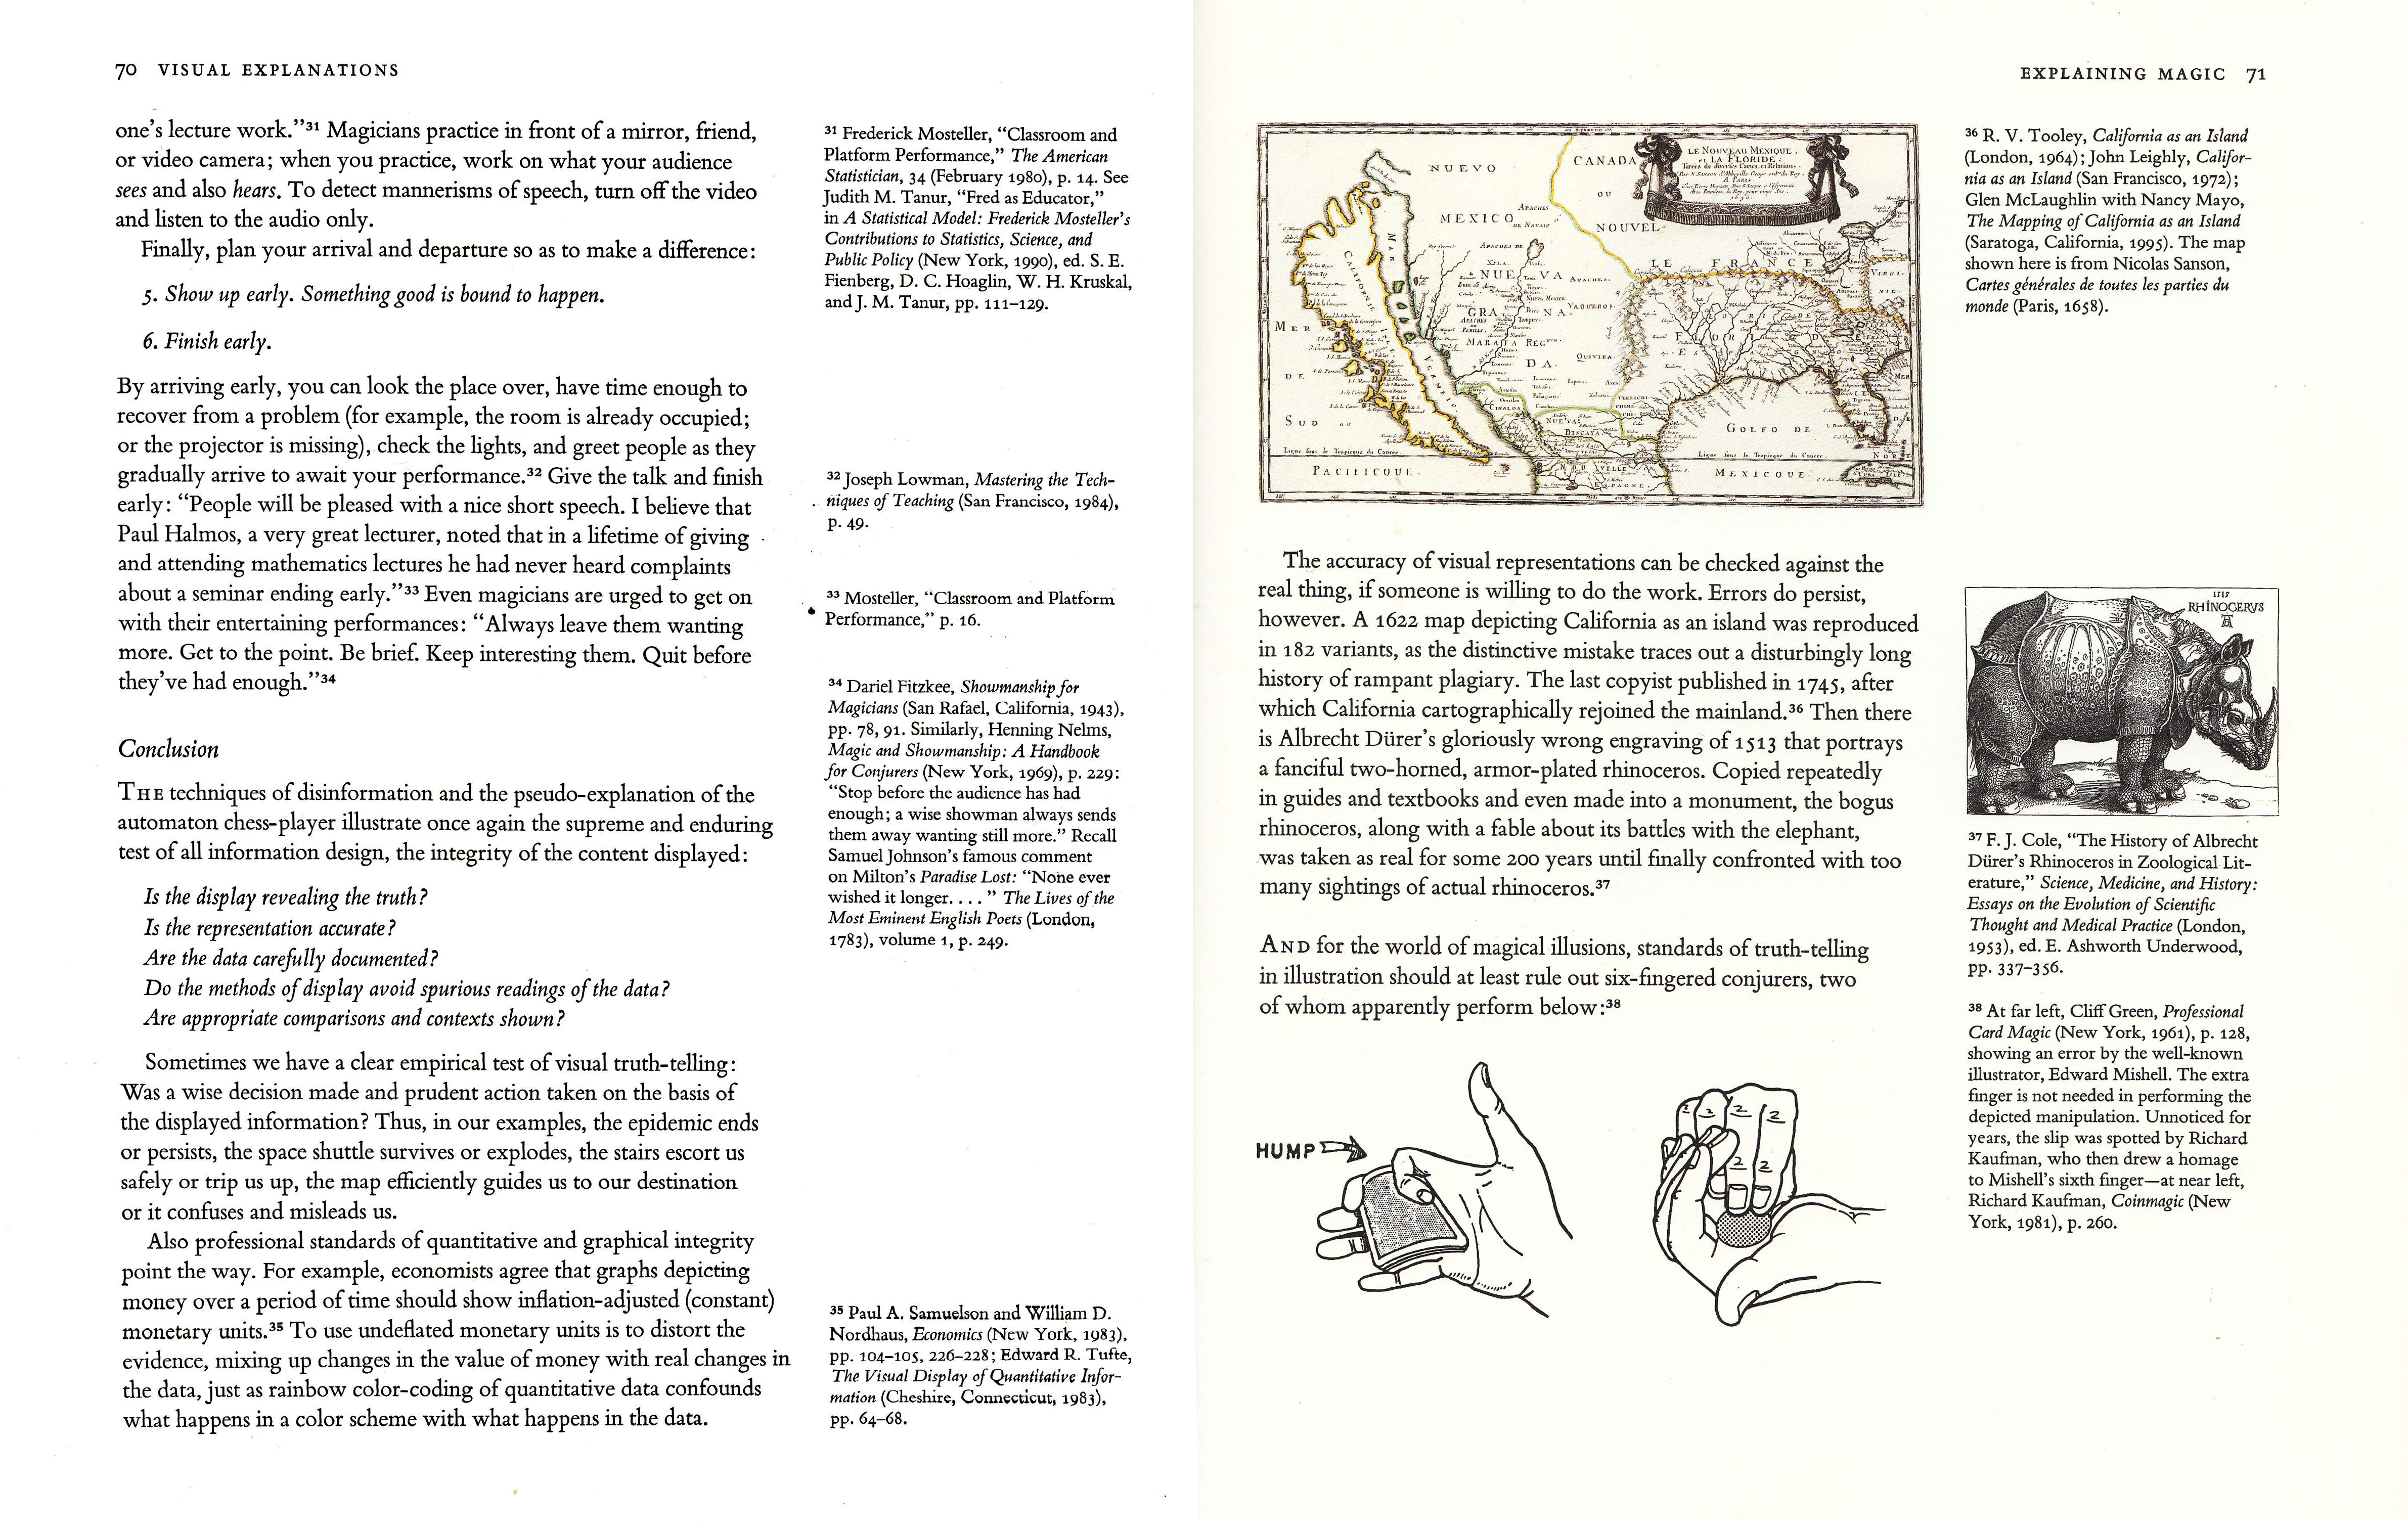 a spread from _Visual Explanations_, Edward R. Tufte